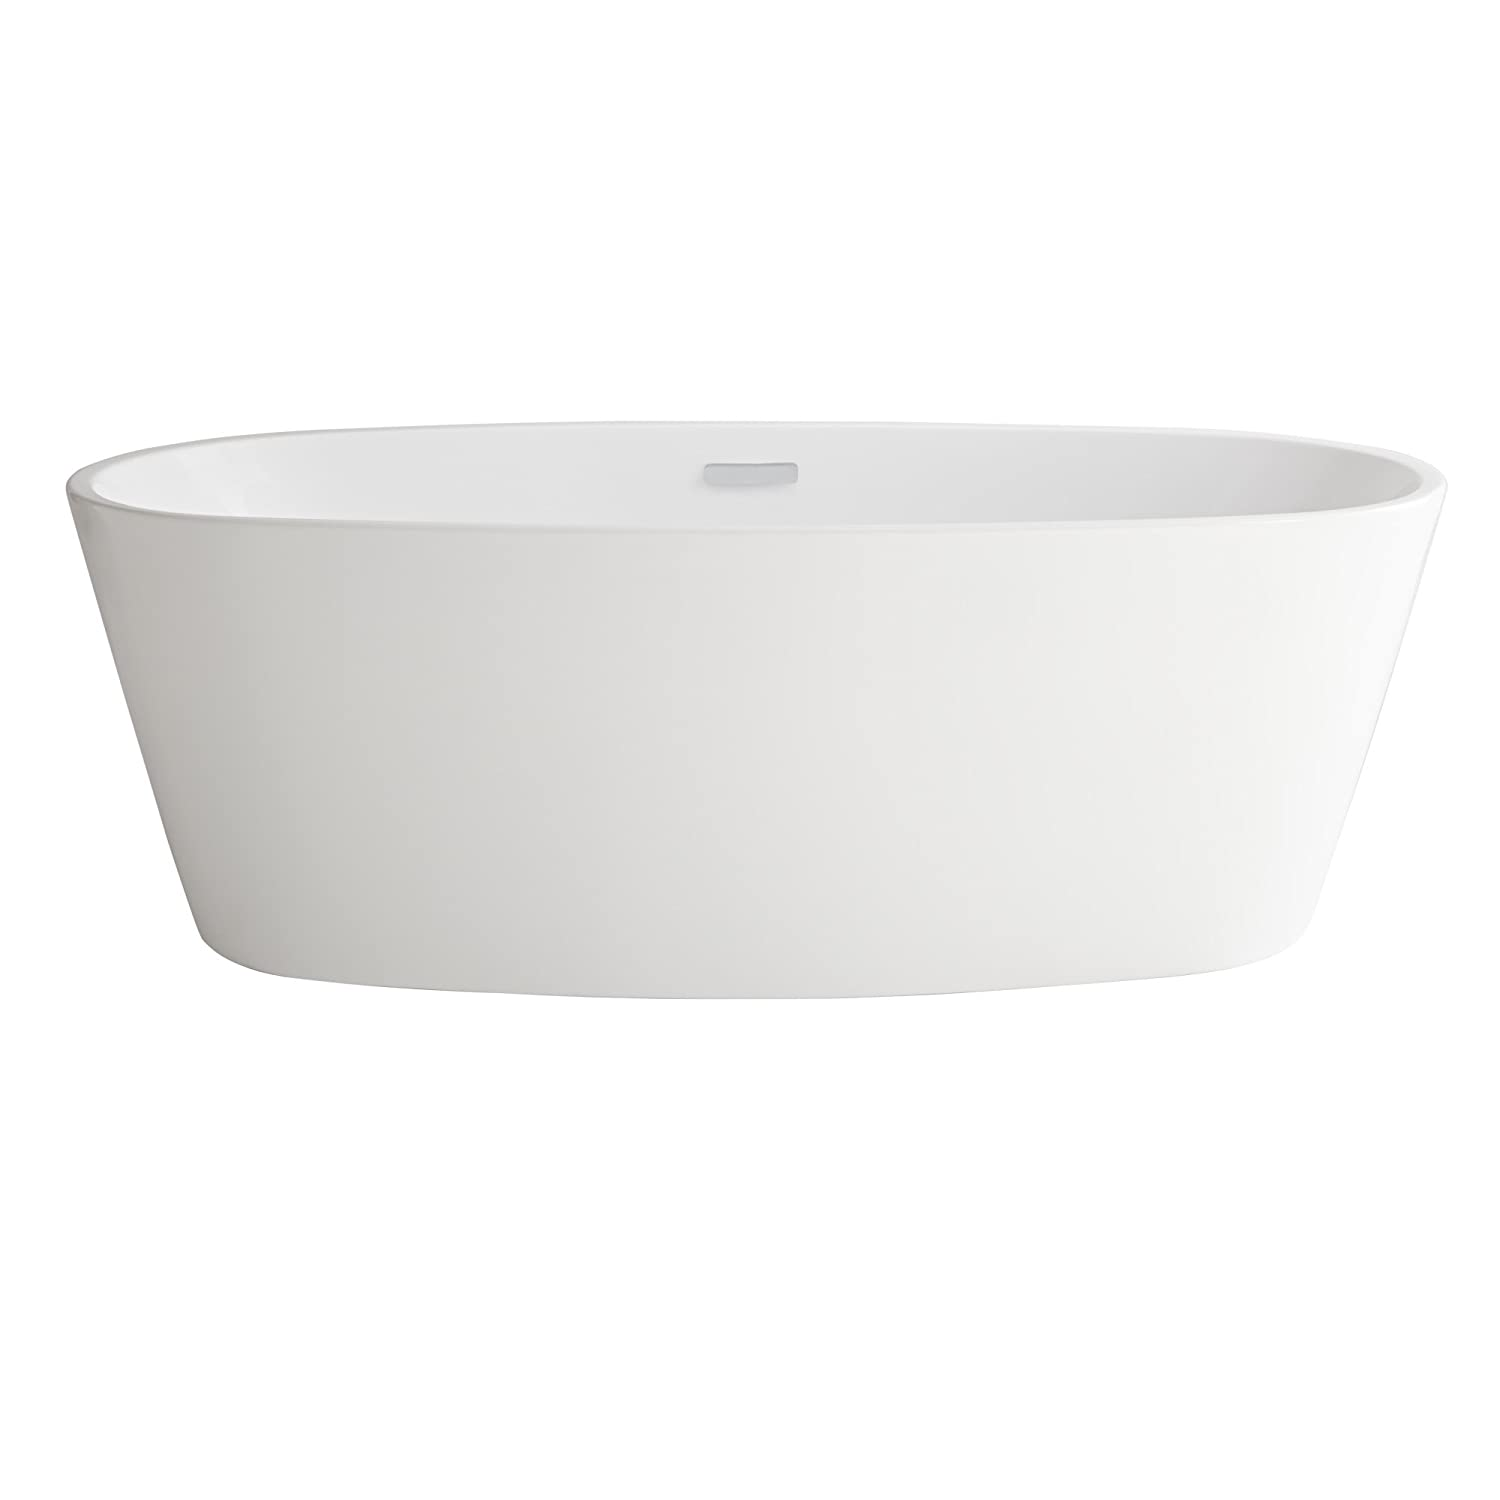 freestanding tub bathroom standard ideas bathtub kateryn skirted with american cast bateau iron skirt